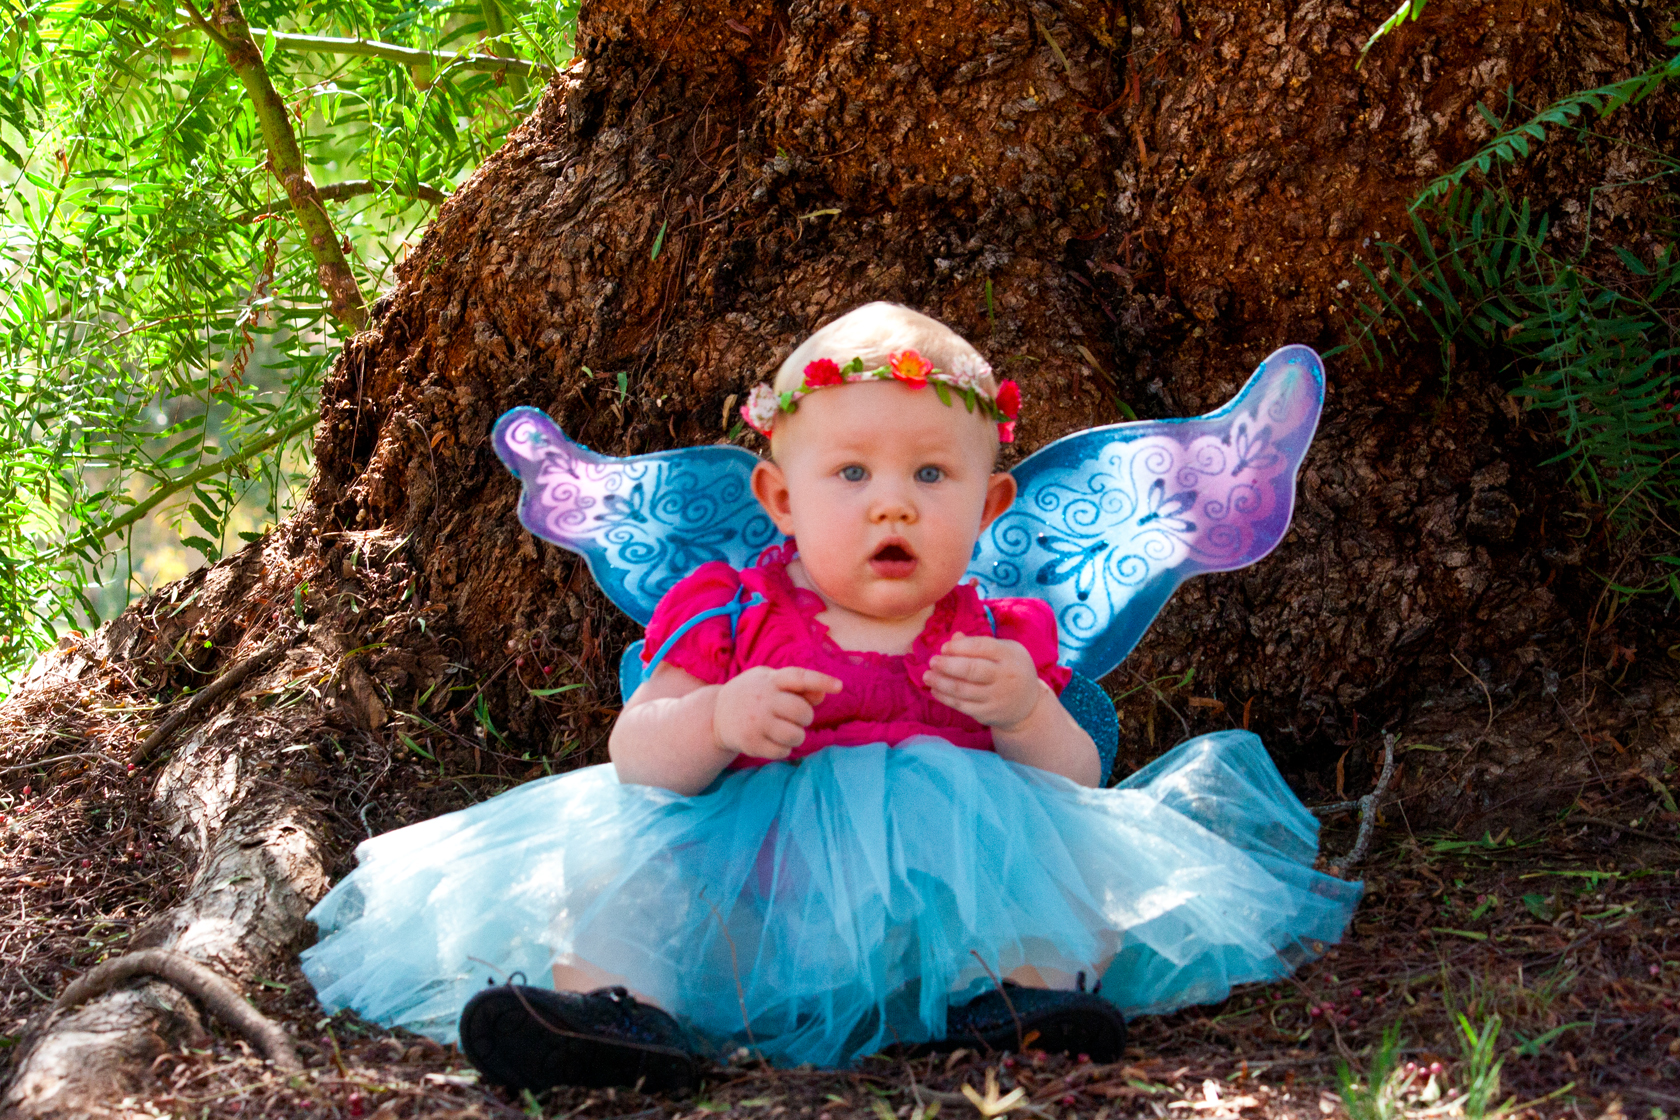 A little fairy.